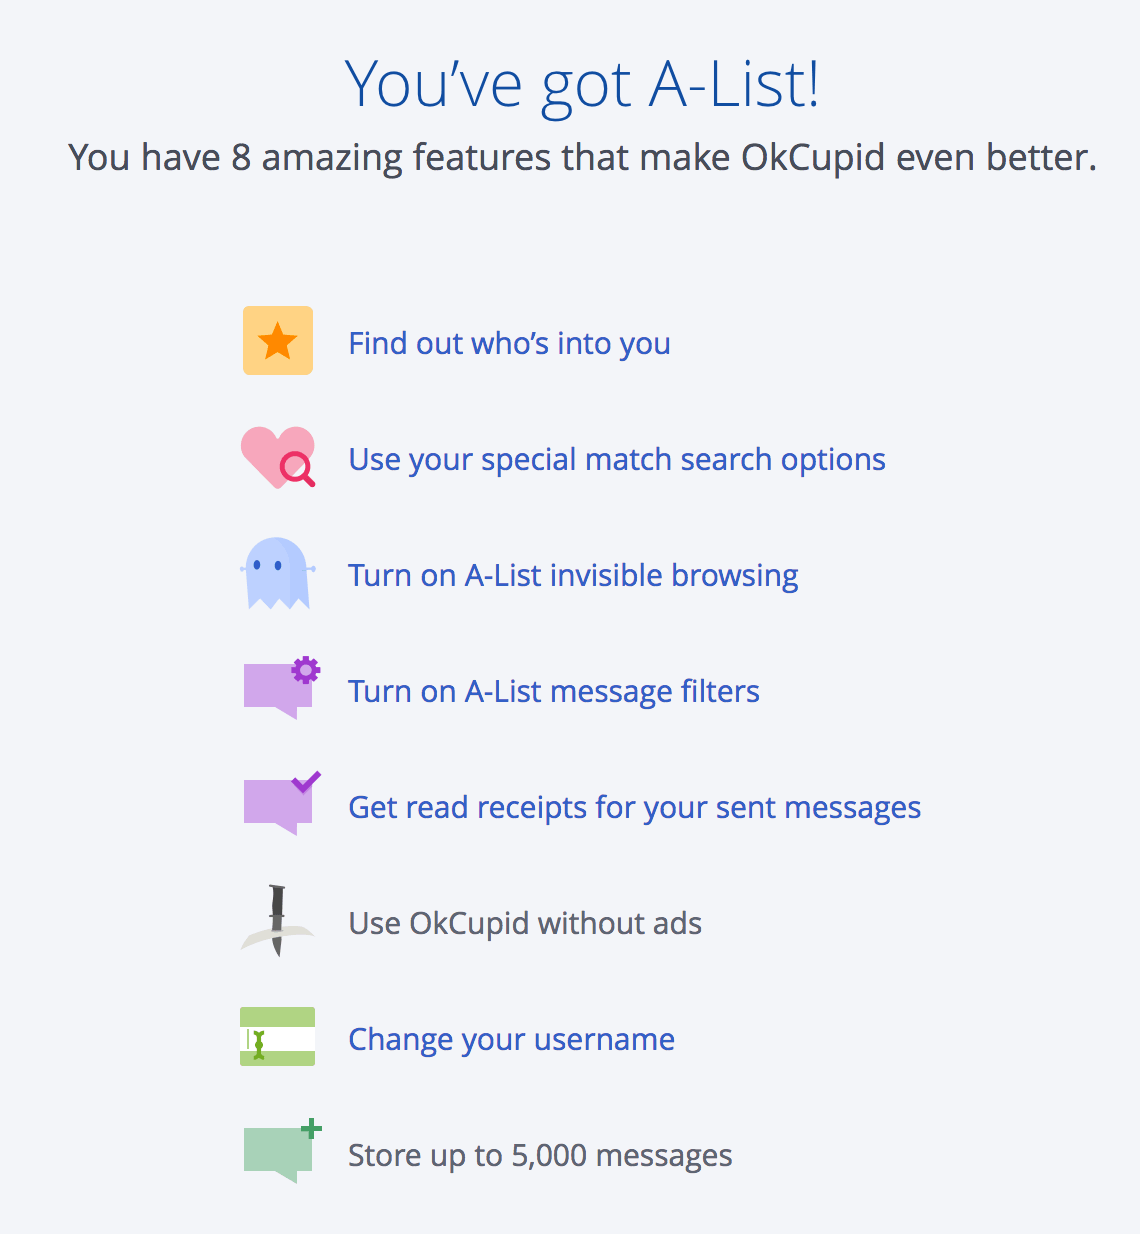 OkCupid A-List Hack: Is It Worth the Price Tag? - Top Romp